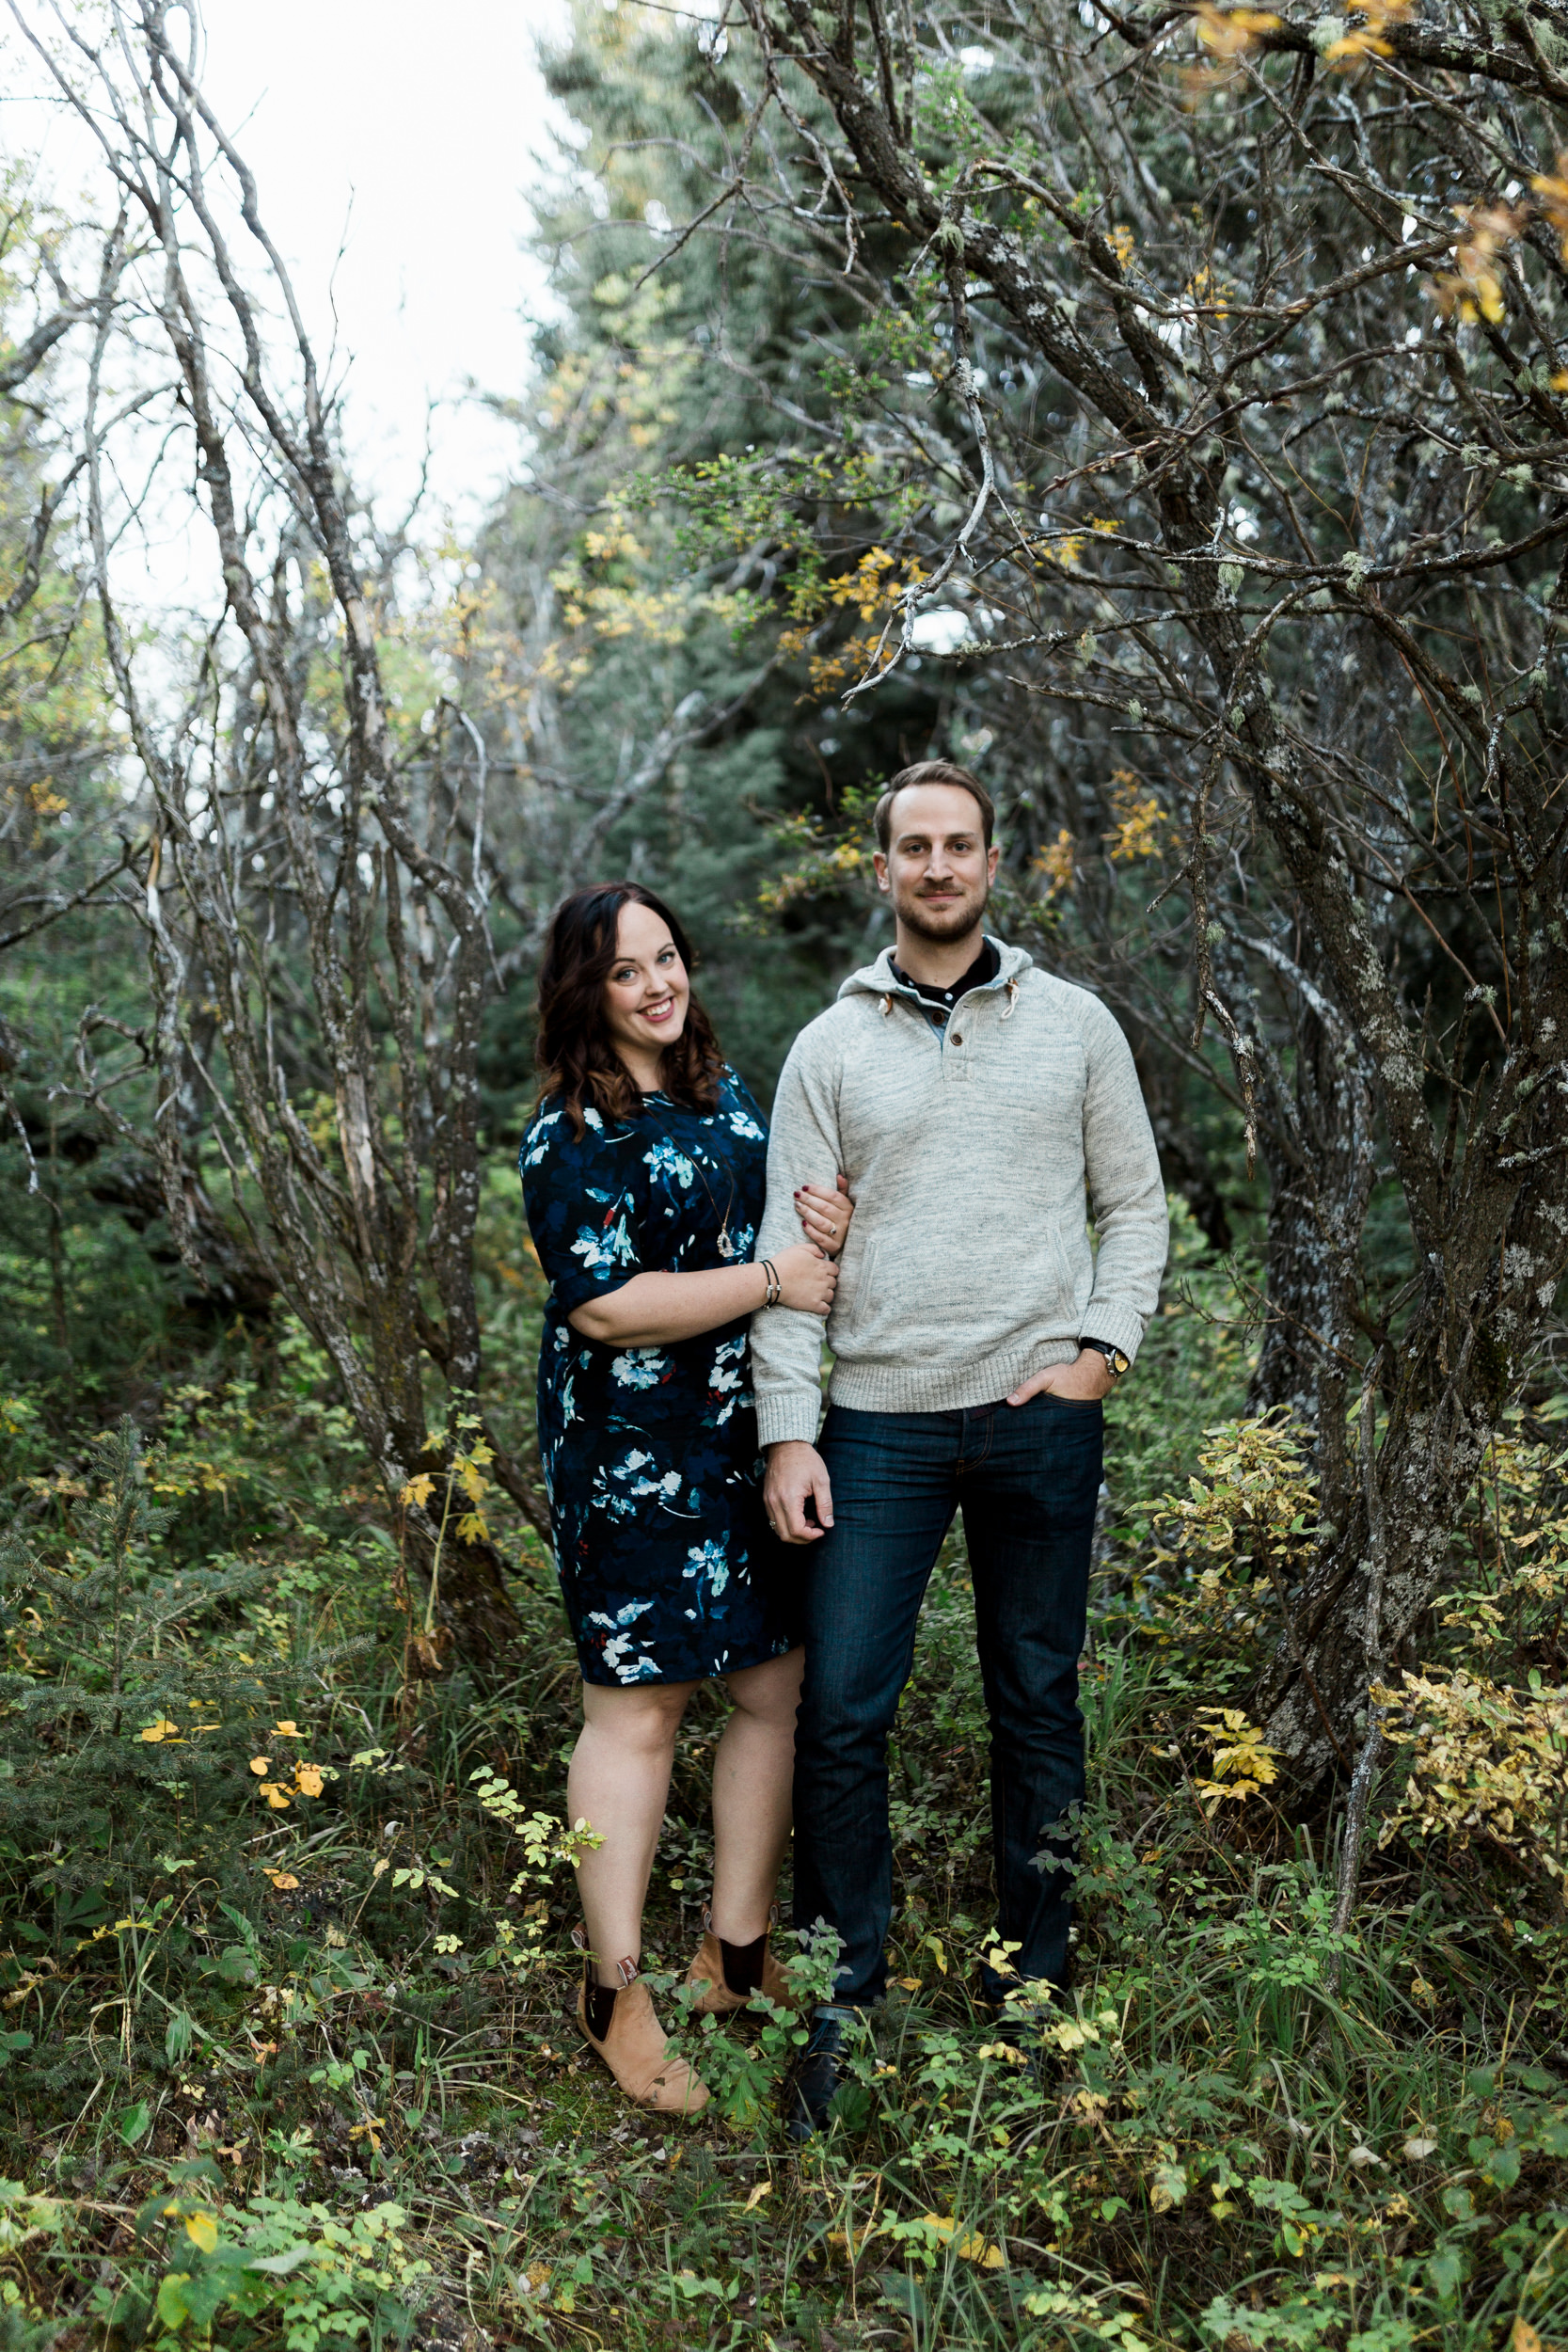 Timeless engagement in nature in the woods